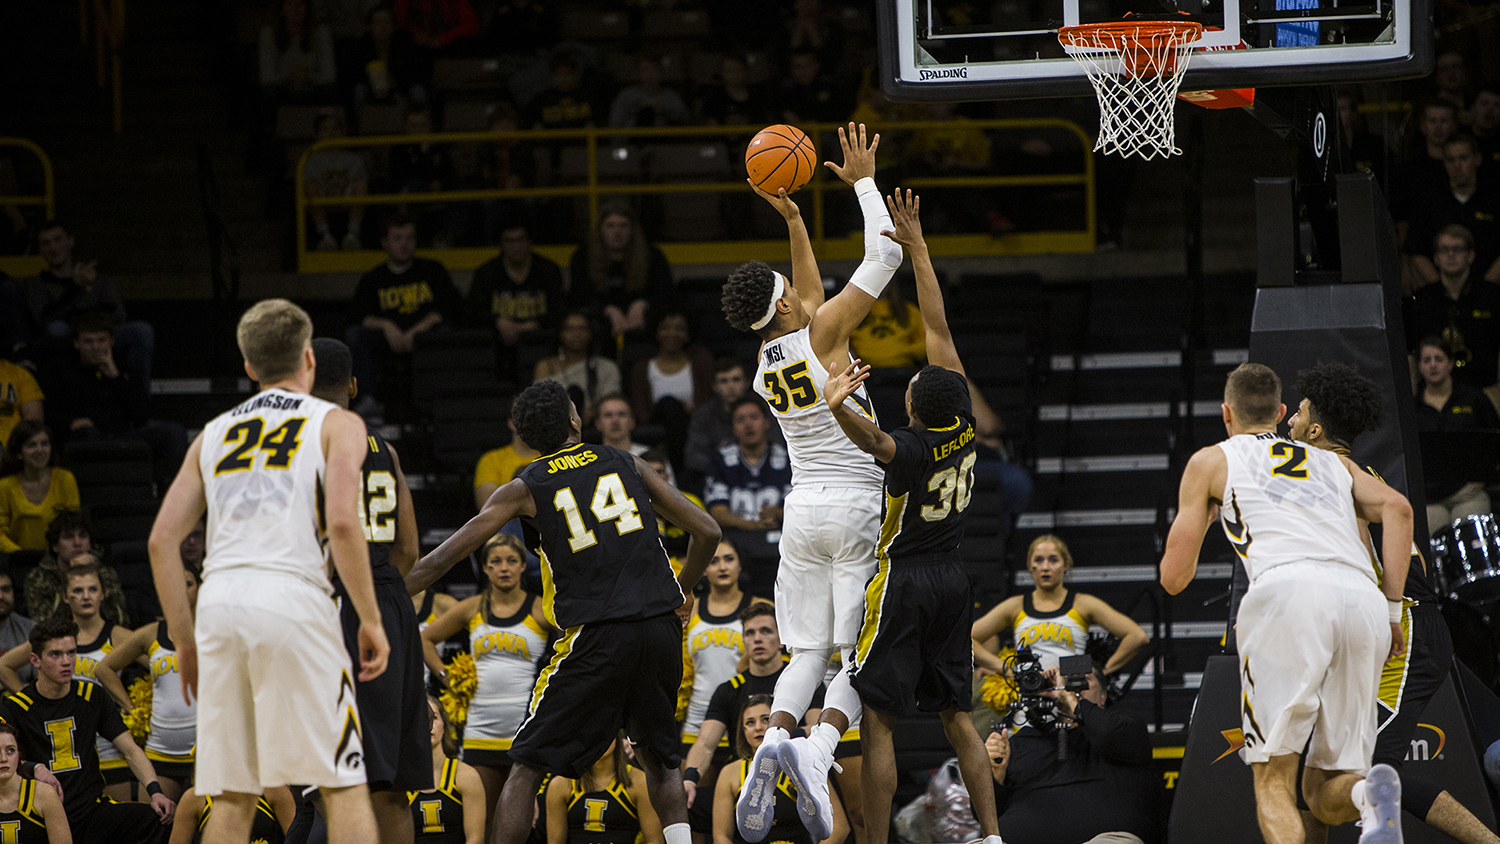 Iowa forward Cordell Pemsl drives for a layup against Alabama State in Carver-Hawkeye on Nov. 12, 2017. The Hawkeyes defeated the Hornets, 92-58.